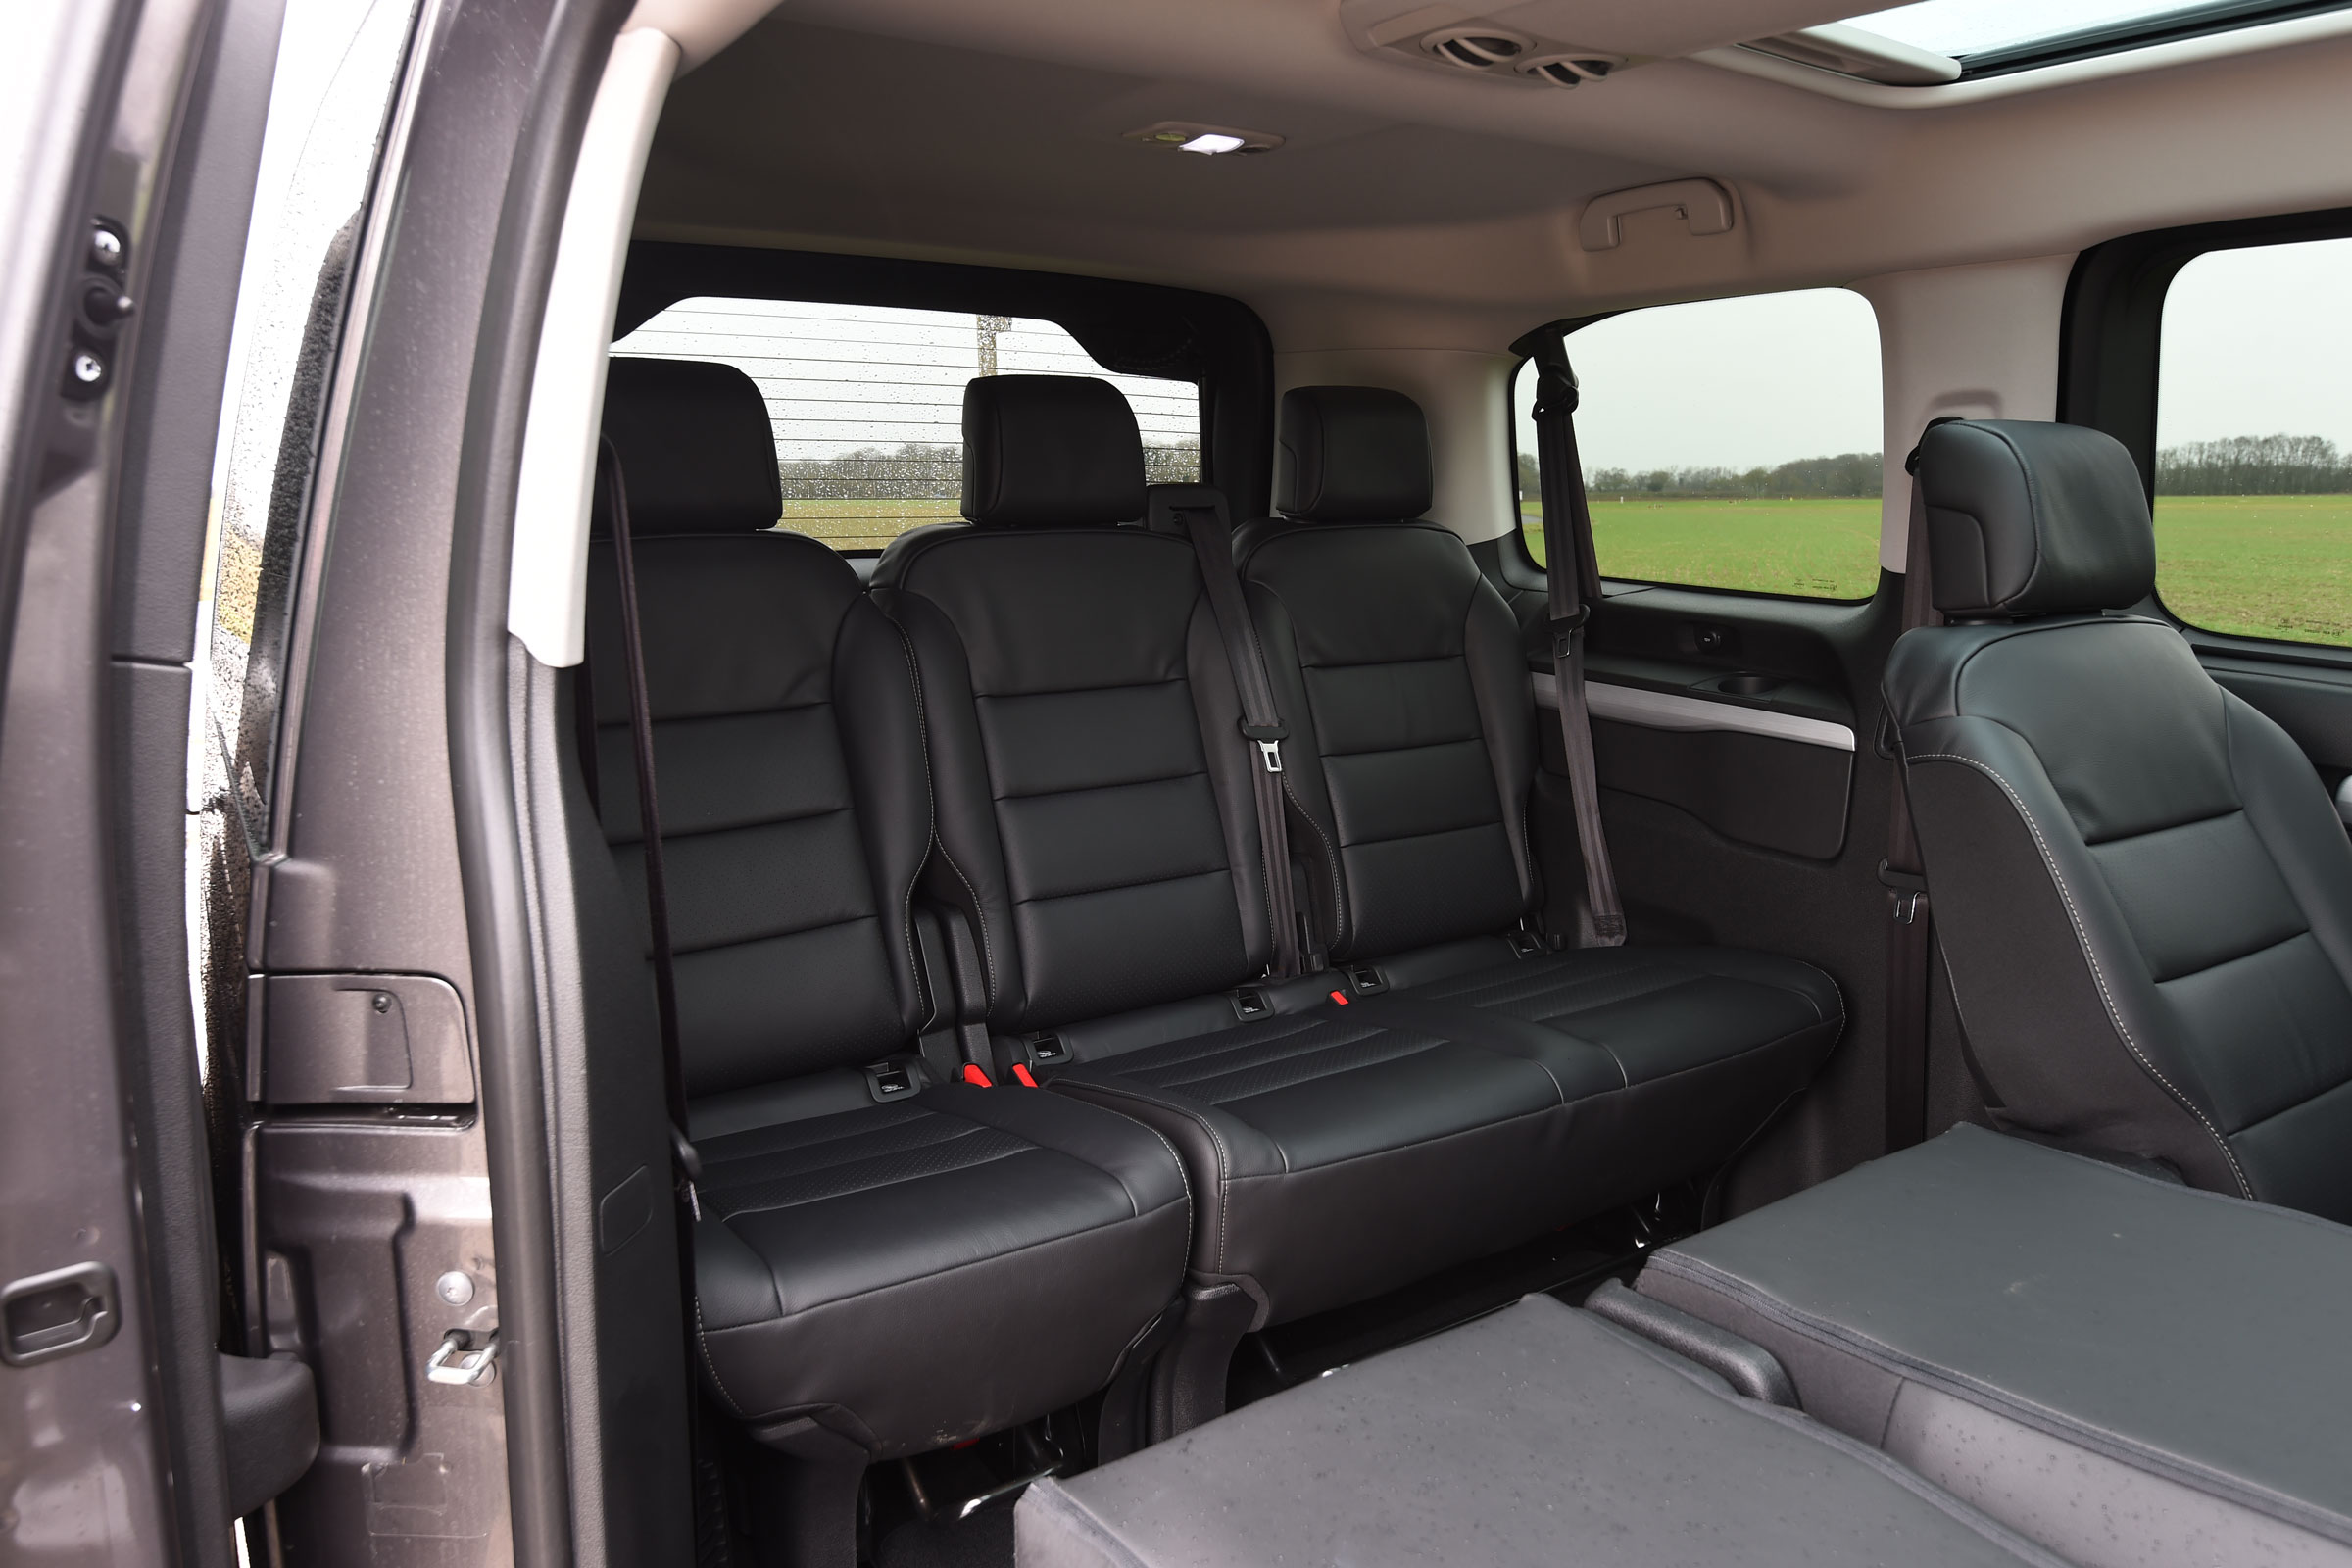 2017 Peugeot Traveller Allure Interior Seats Rear 3rd Row (Photo 8 of 13)